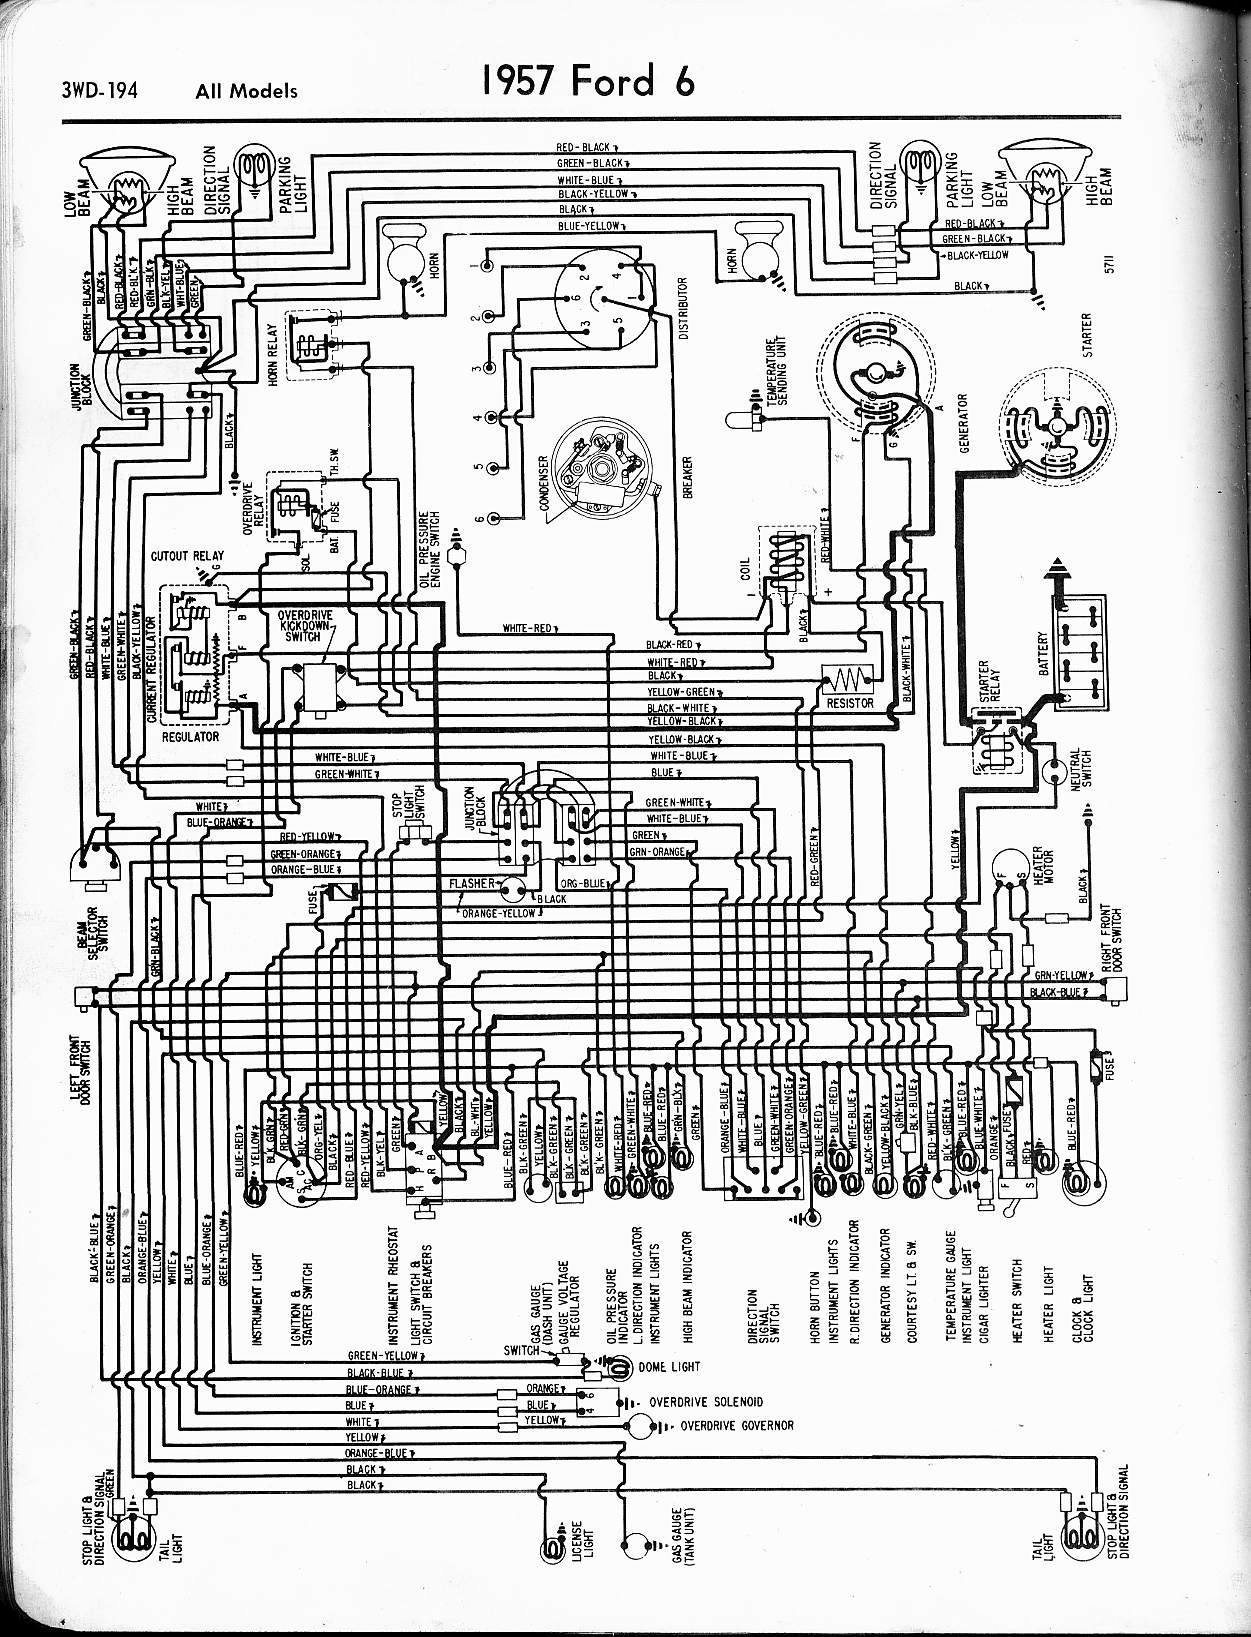 ford 901 wiring diagram hooking up bose 901 wiring diagram